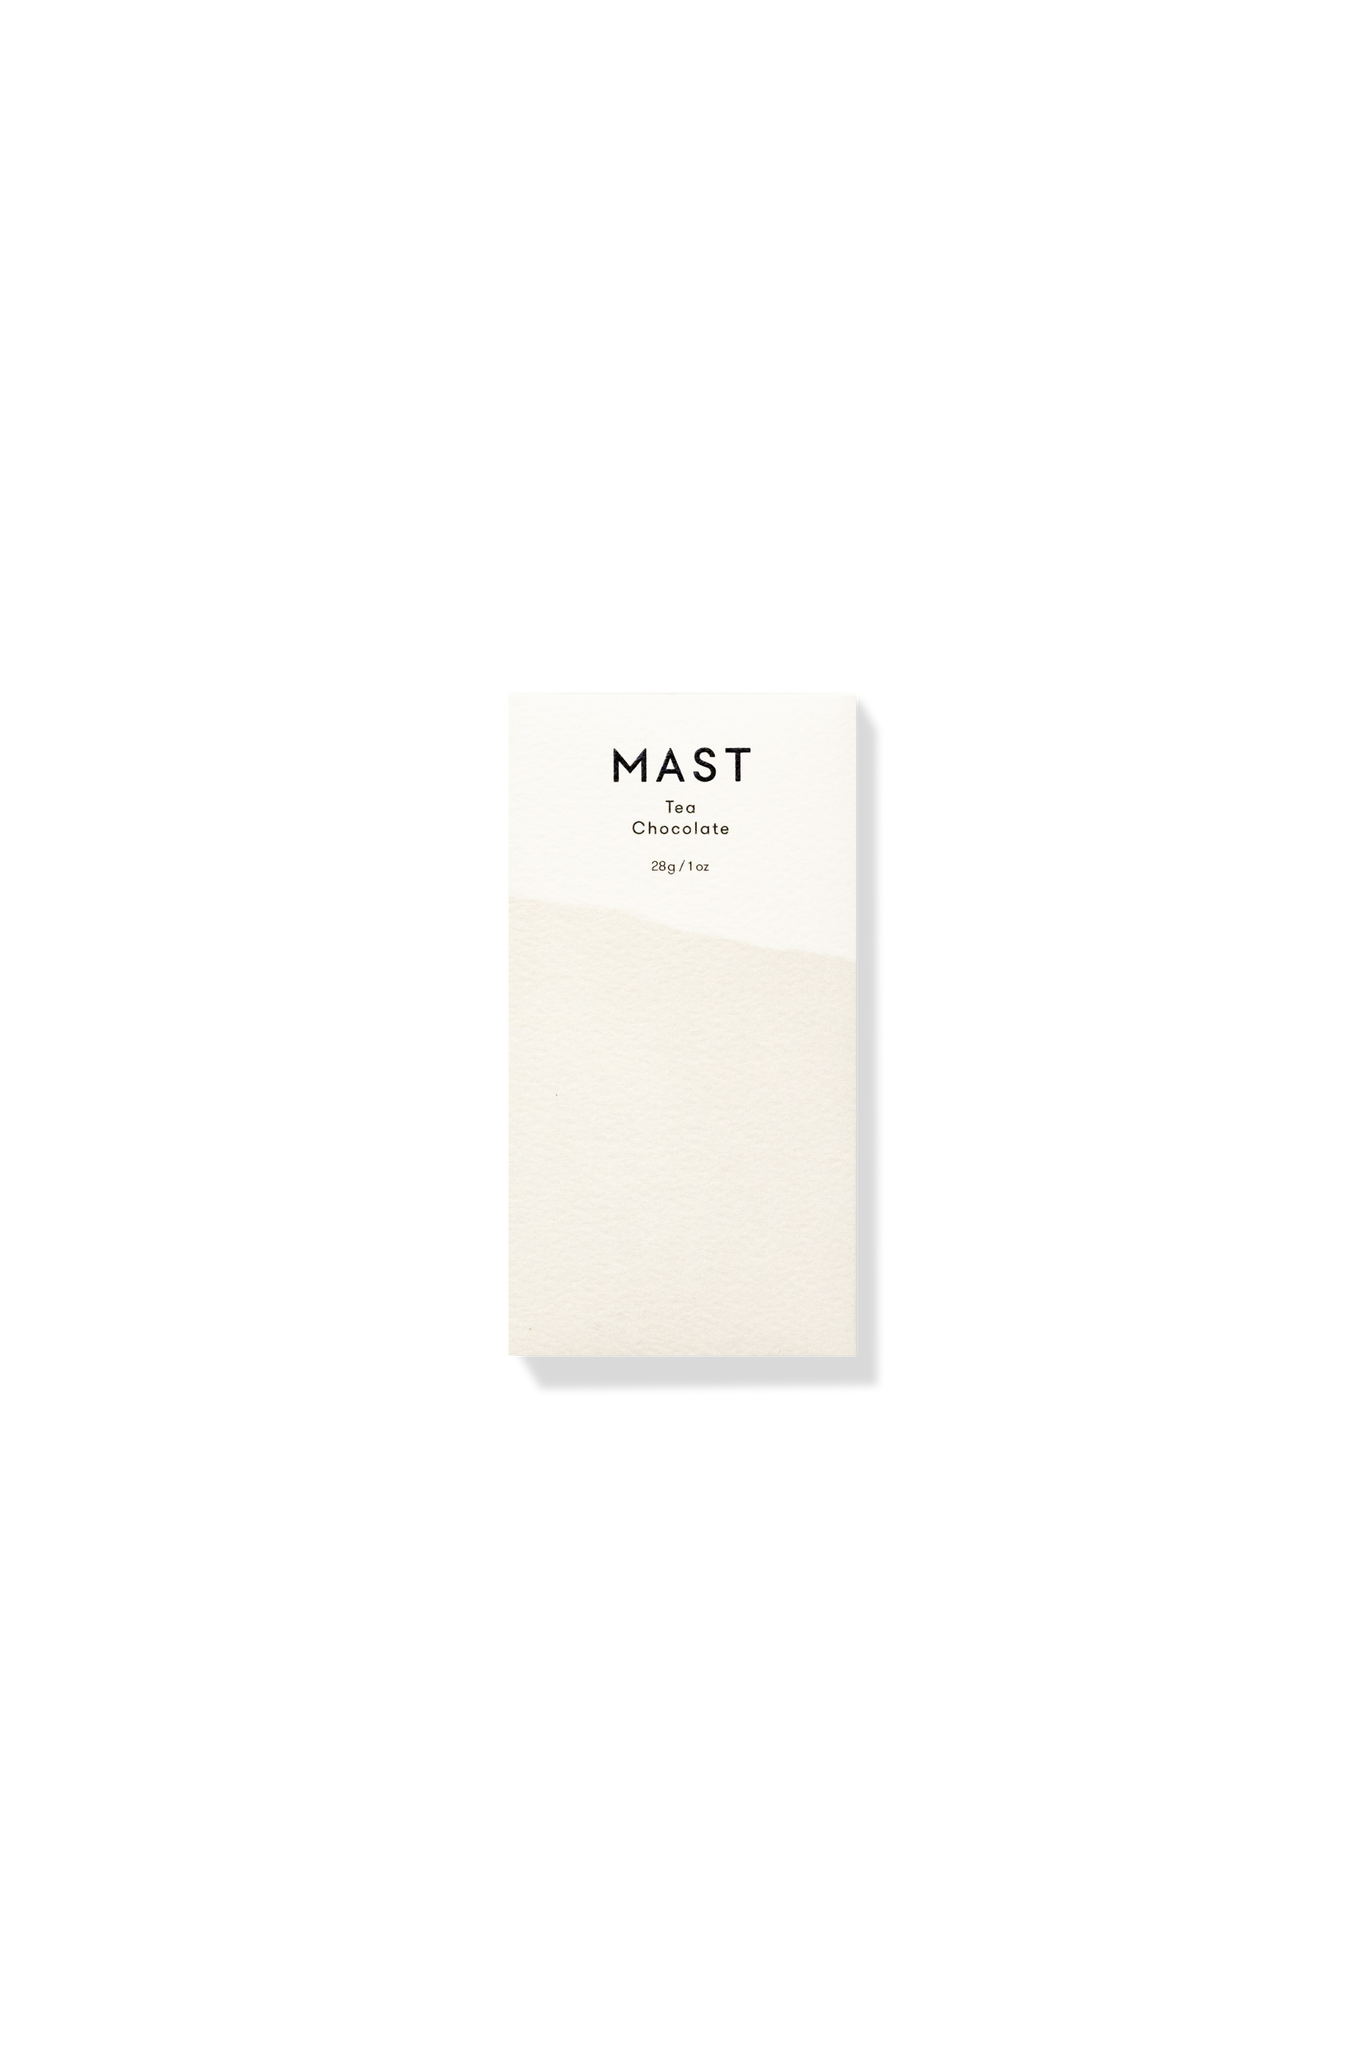 Mast - Tea Chocolate - Mini (28g / 1oz)